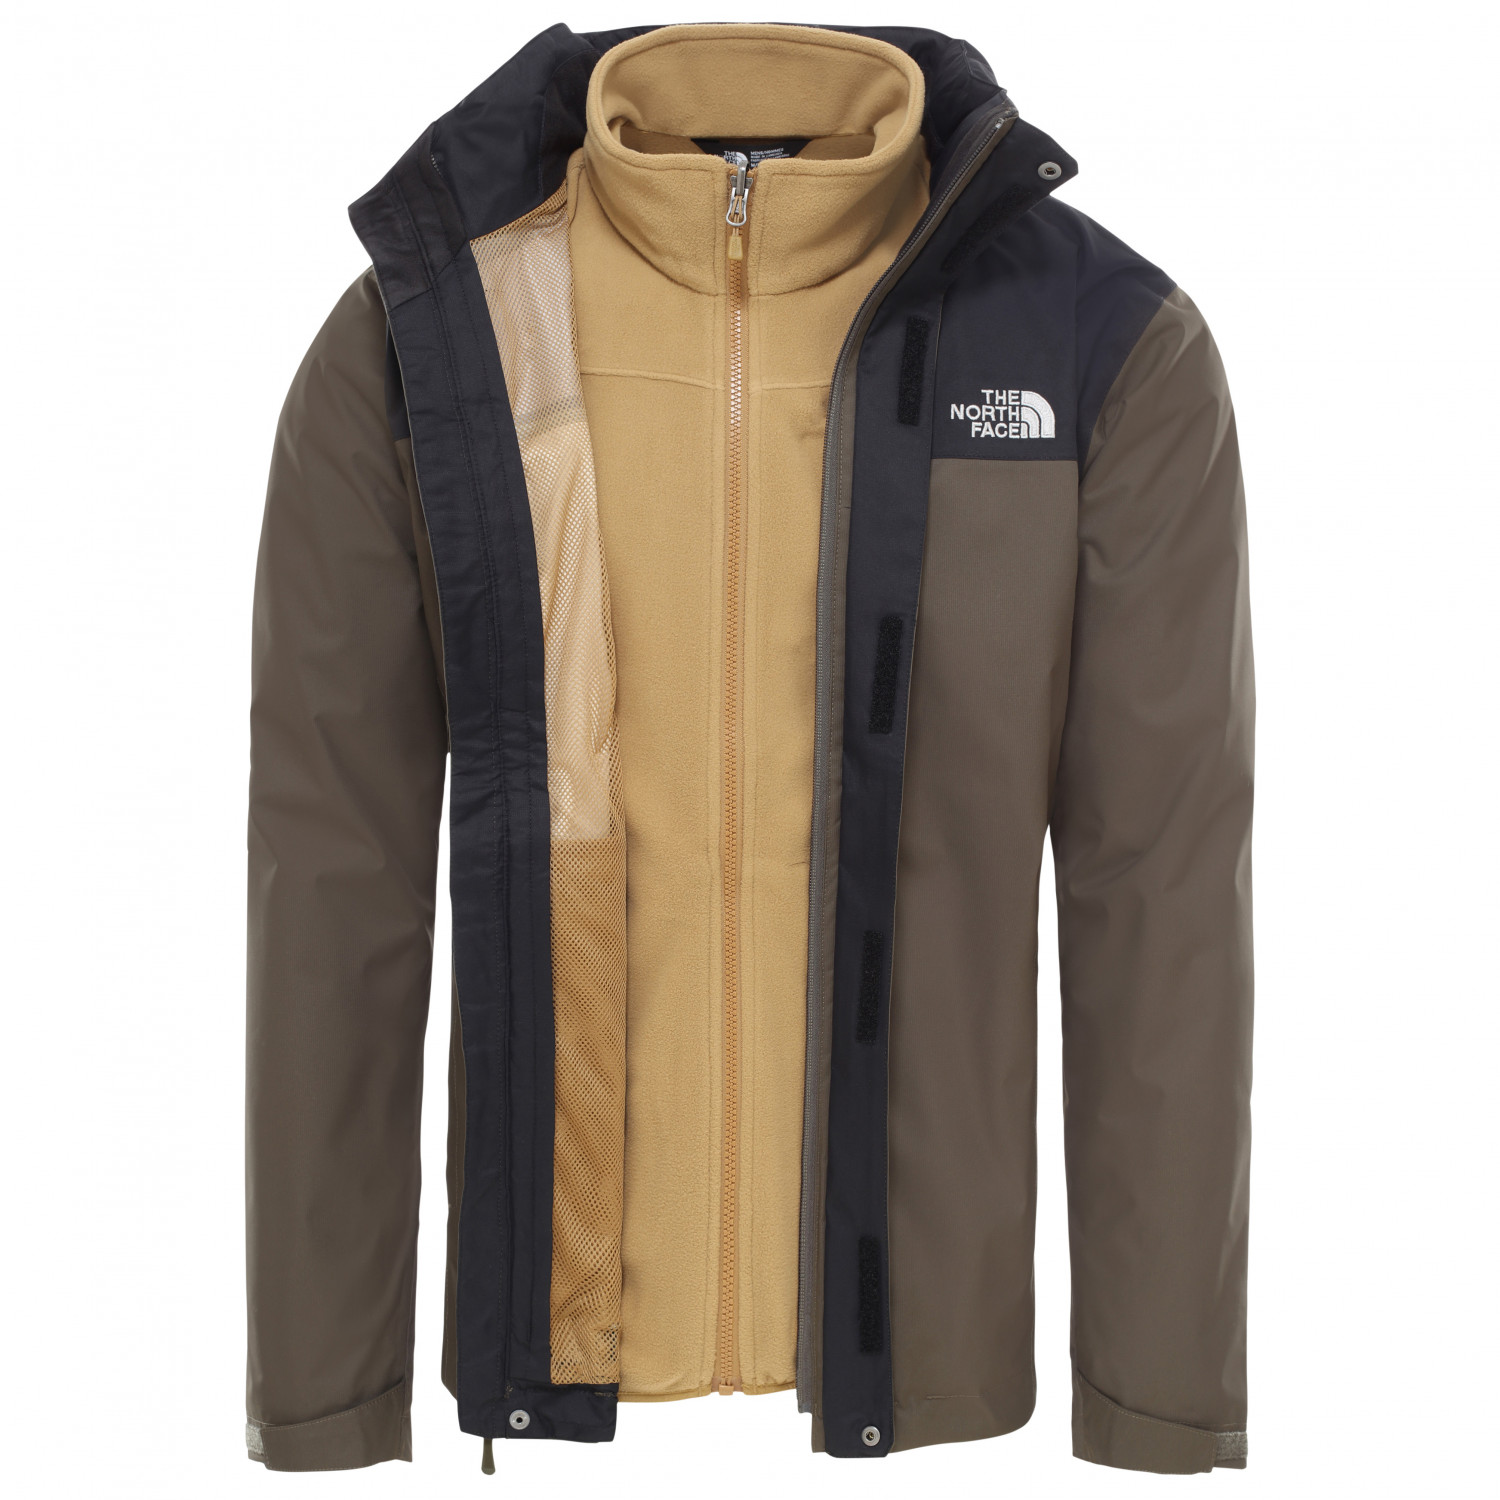 finest selection 5113b c3e9a The North Face Evolve II Triclimate Jacket - Doppeljacke ...